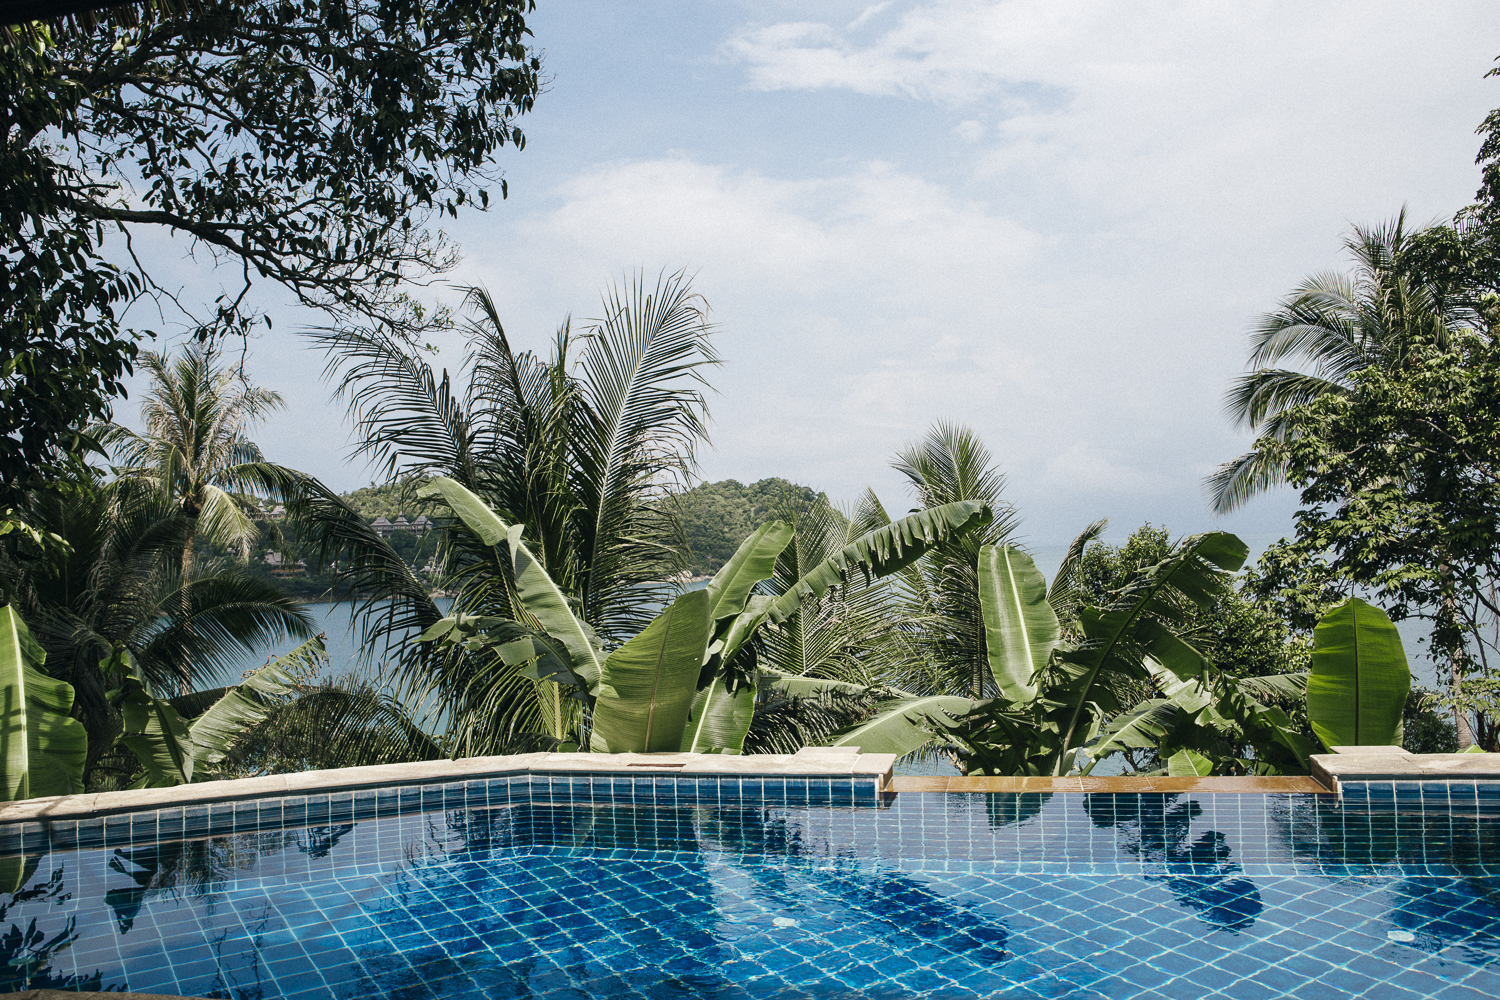 Koh Phangan is not just a party island